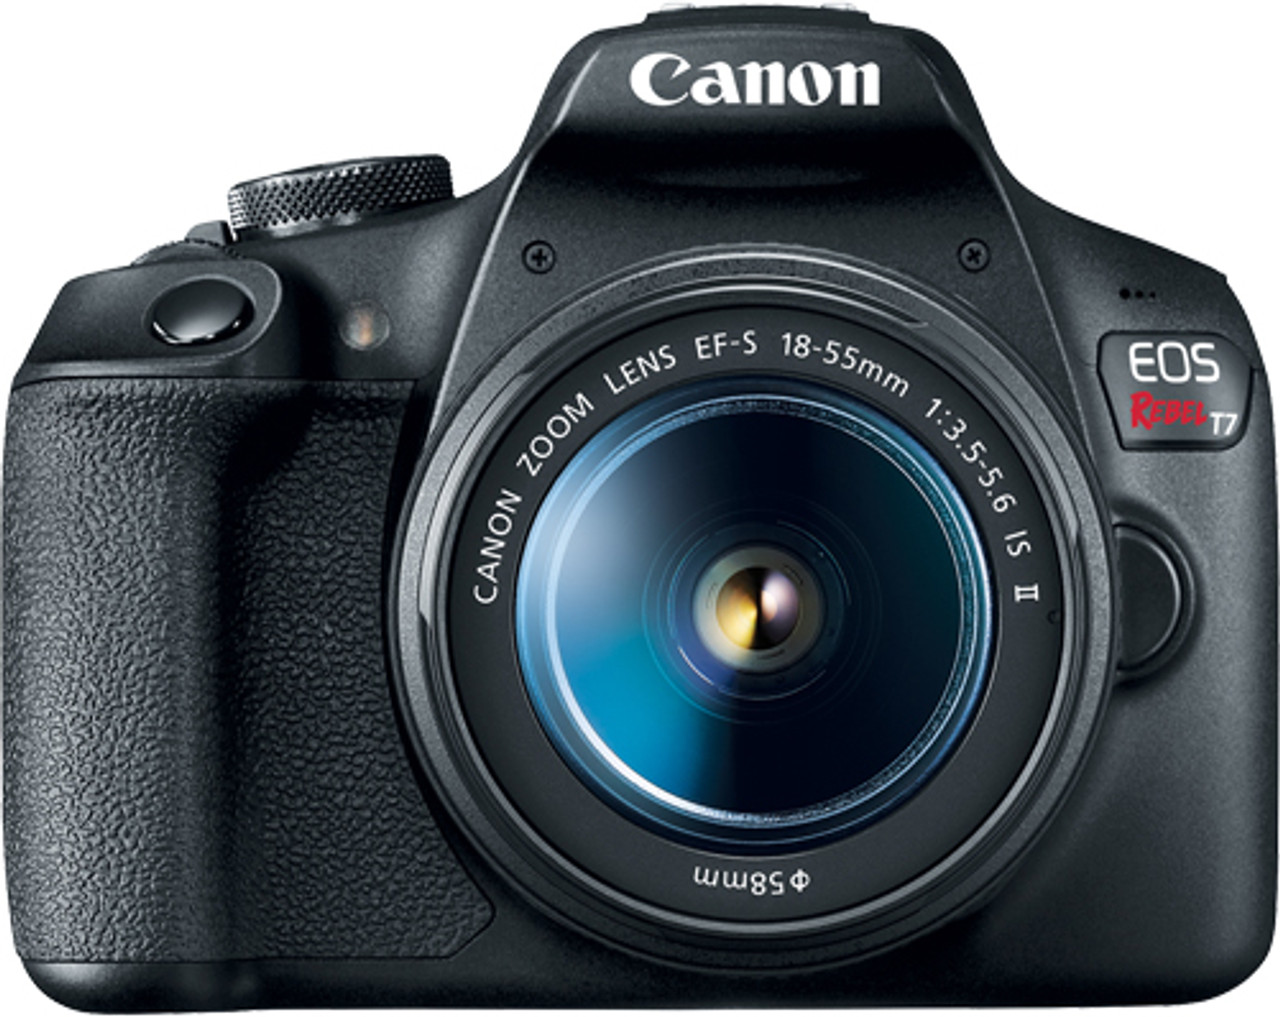 Canon EOS Rebel T7 Digital SLR Camera with EF-S 18-55mm F3.5-5.6 IS II